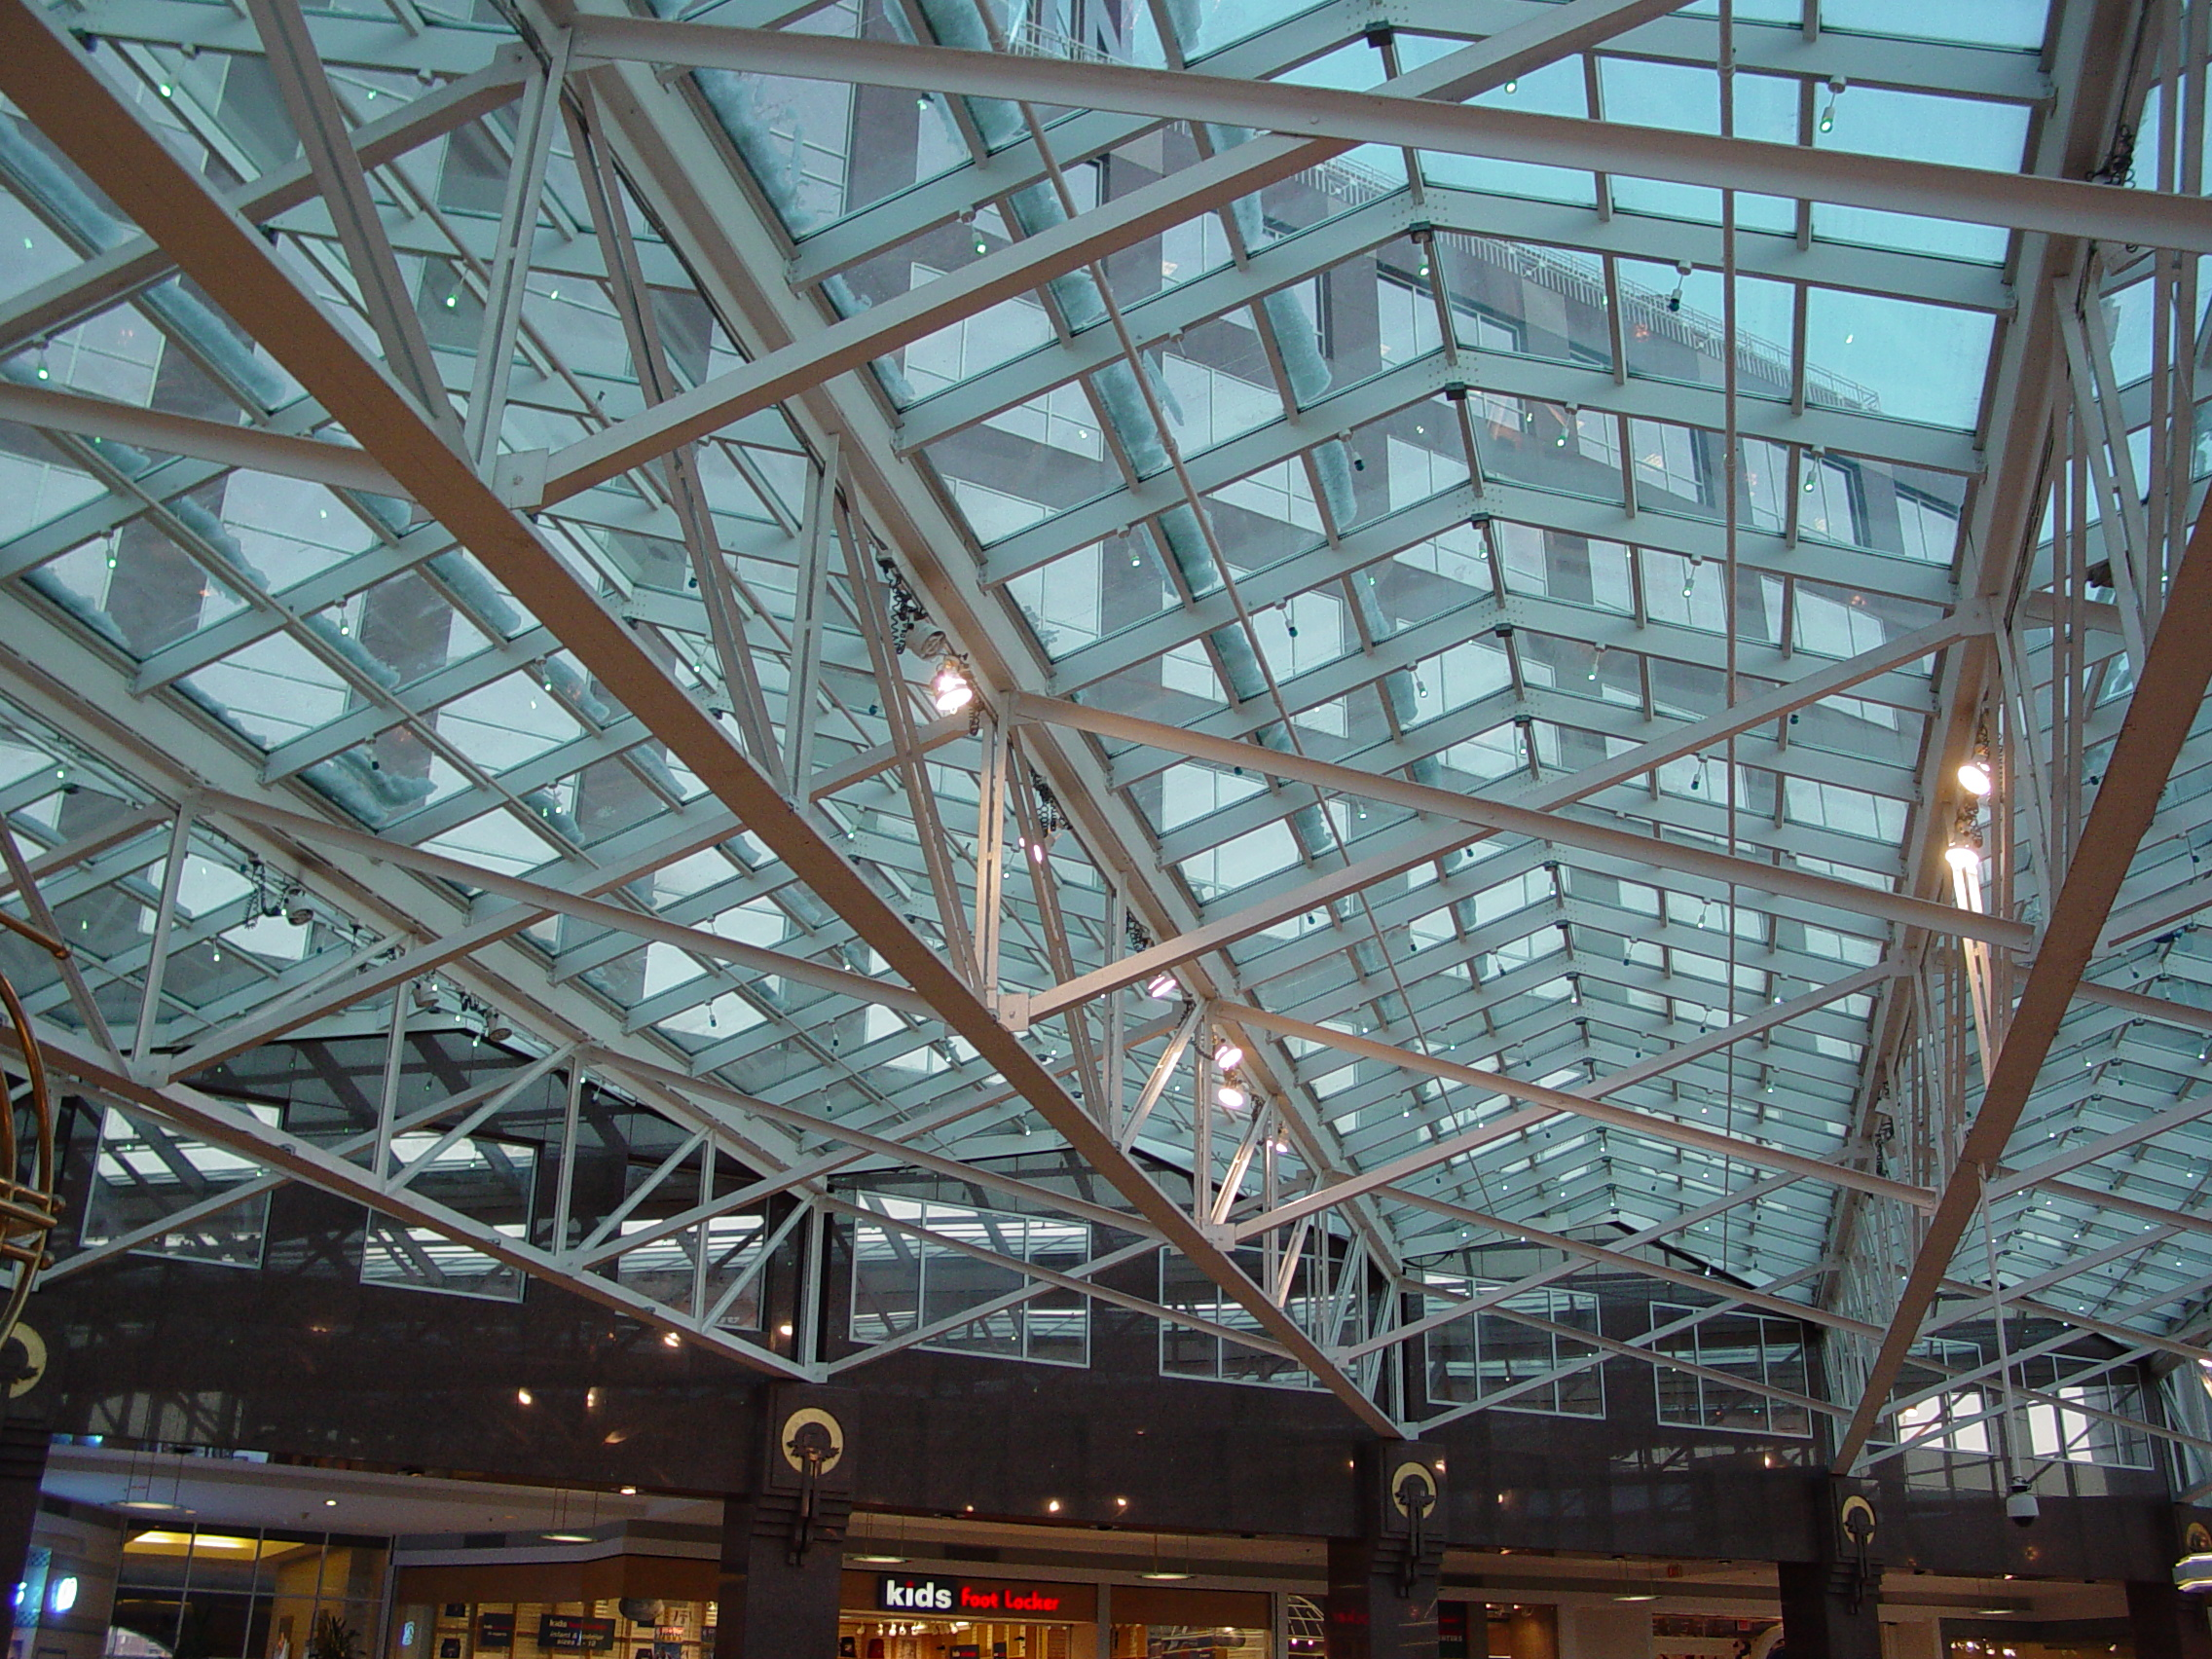 File:Roof Detail, Pentagon City Mall